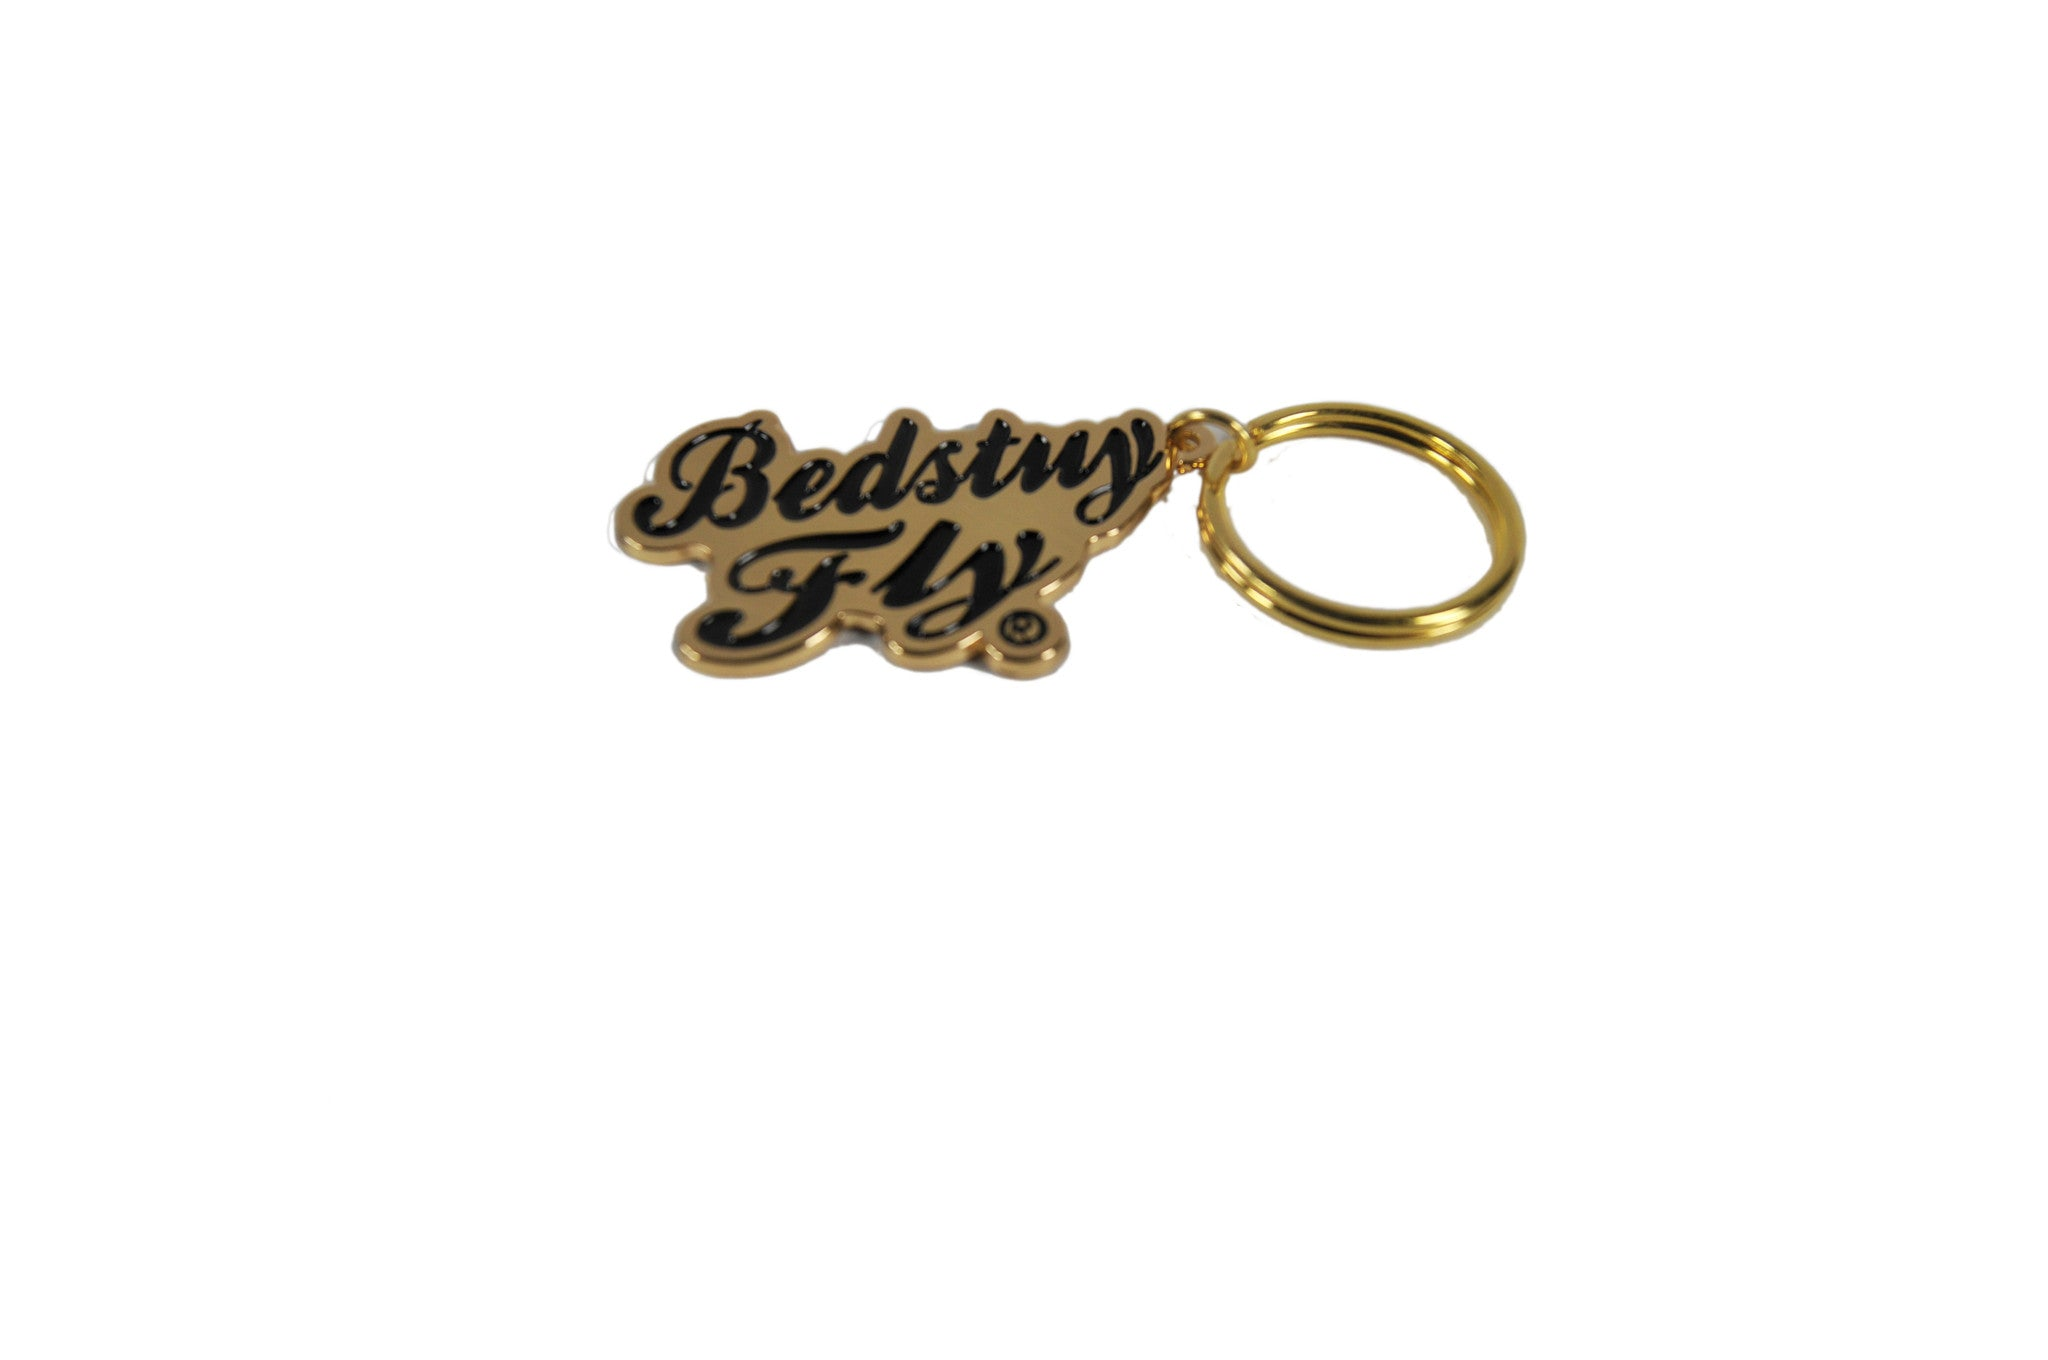 Bedstuy Fly Keychain (Gold)